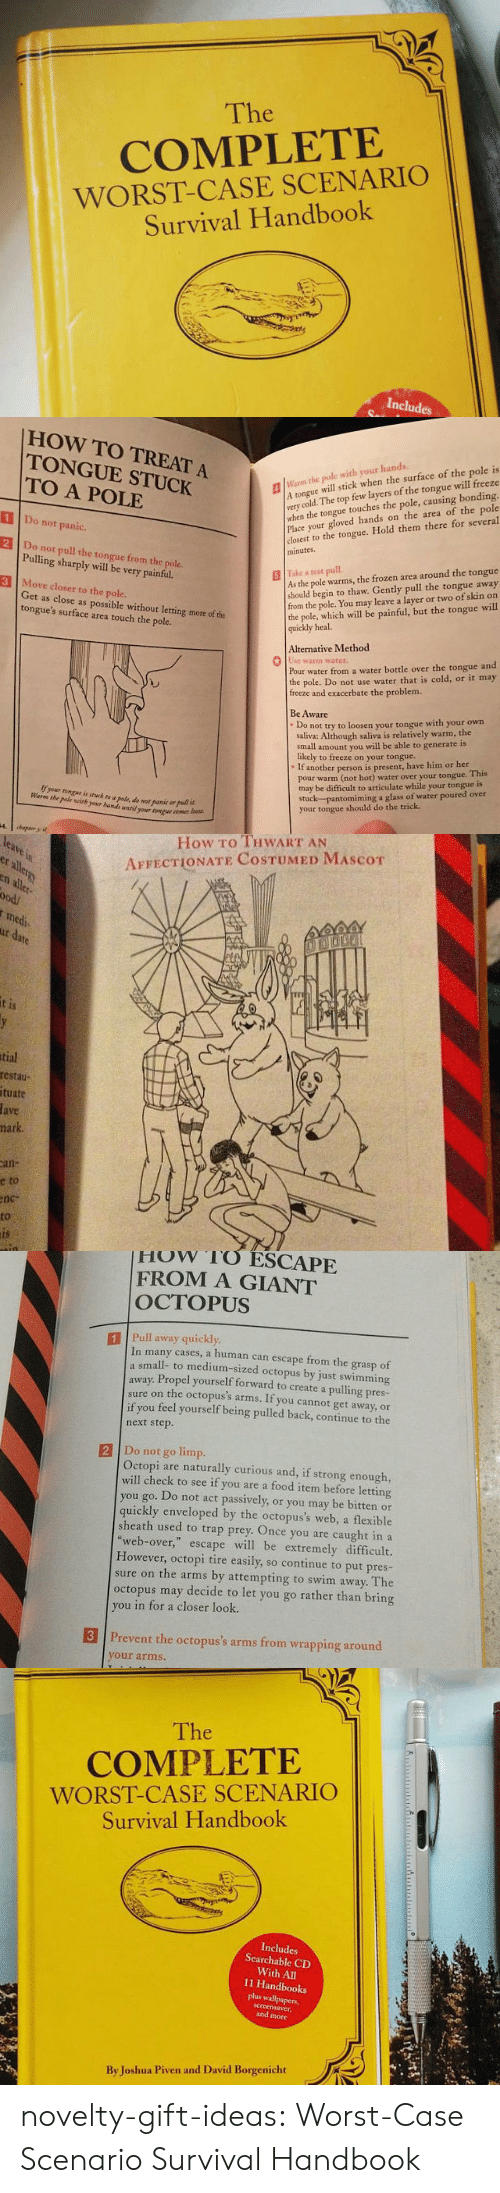 bitten: The  COMPLETE  WORST-CASE SCENARIO  Survival Handbook  Includes   HOW TO TREAT A  TONGUE STUCK  TO A POLE  lWarm the pole with your hands.  Atongue will stick when the surface of the pole is  very  when the tongue touches the pole, causing bonding.  Place your gloved hands on the area of the pole  closest to the tongue. Hold them there for several  minutes  cold. The top few layers of the tongue will freeze  1 Do not panic.  2 Do not pull the tongue from the pole  3 Move closer to the pole.  Pulling sharply will be very painful.  As the pole warms, the frozen area around the tongue  should begin to thaw. Gently pull the tongue away  from the pole. You may leave a layer or two of skin on  the pole, which will be painful, but the tongue will  quickly heal.  | İlke z test pull.  Get as close as possible without letting more of the  tongue's surface area touch the pole.  Alternative Method  0  se warm water  Pour water from a water bottle over the tongue and  the pole. Do not use water that is cold, or it may  freeze and exacerbate the problem.  Be Aware  Do not try to loosen your tongue with your own  saliva: Although saliva is relatively warm, the  small amount you will be able to generate is  likely to freeze on your tongue..  If another person is present, have him or her  pour warm (not hot) water over your tongue. This  may be difficult to articulate while your tongue is  stuck-pantomiming a glass of water poured over  your tongue should do the trick  Warm the pole wih yr ui wti  your ton   How To THWART AN  AFFECTIONATE COSTUMED MAScoT  er  all  ood/  medi  1S  tial  restau  tuate  fave  hark  an-  e  to  nc-  to   How rO ESCAPE  FROM A GIANT  OCTOPUS  1 Pull away quickly  In many cases, a human can escape from the grasp of  small- to medium-sized octopus by just swimming  away. Propel yourself forward to create a pulling pres-  sure on the octopus's arms. If you cannot get away, or  if you feel yourself being pulled back, continue to the  next step.  2 Do